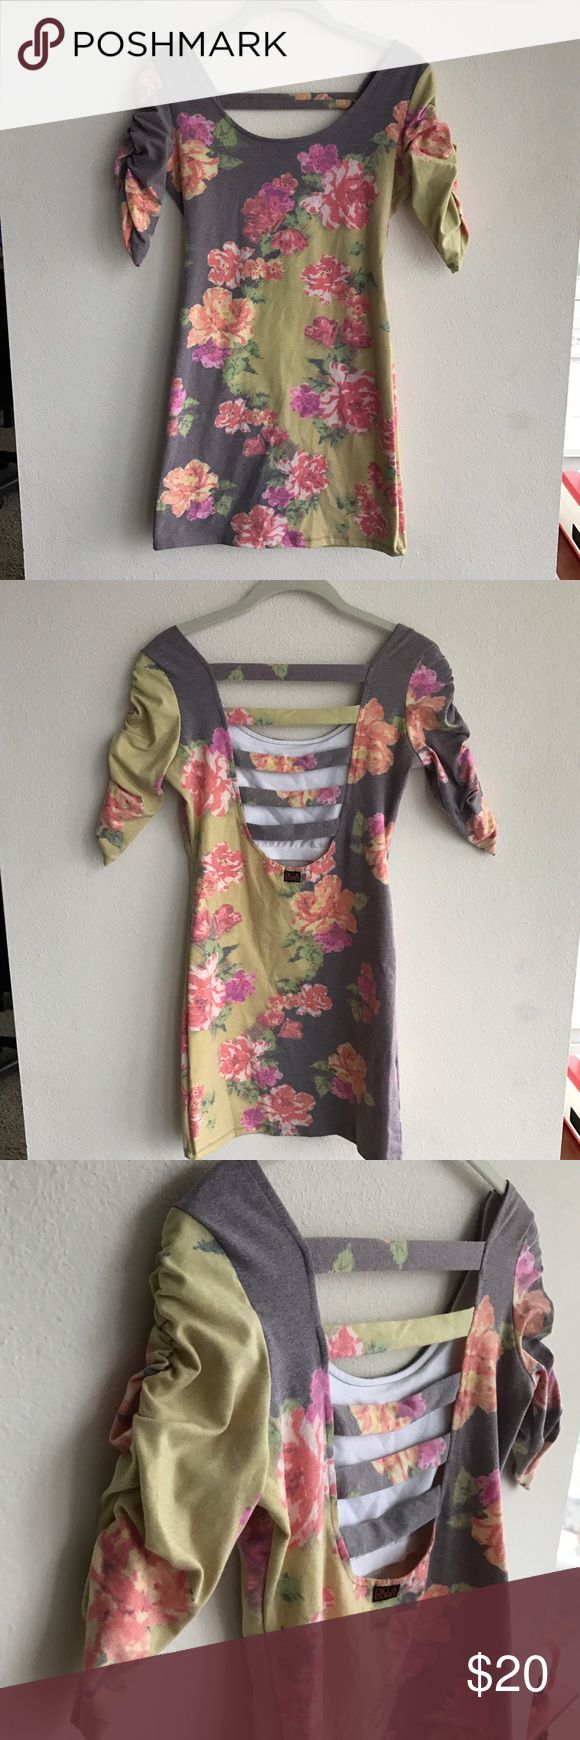 Floral Bodycon Dress Cute floral patterned dress with awesome back details. Scrunched mid length sleeves. Worn once. From Billabongs Designer Closet collection. Billabong Dresses Mini